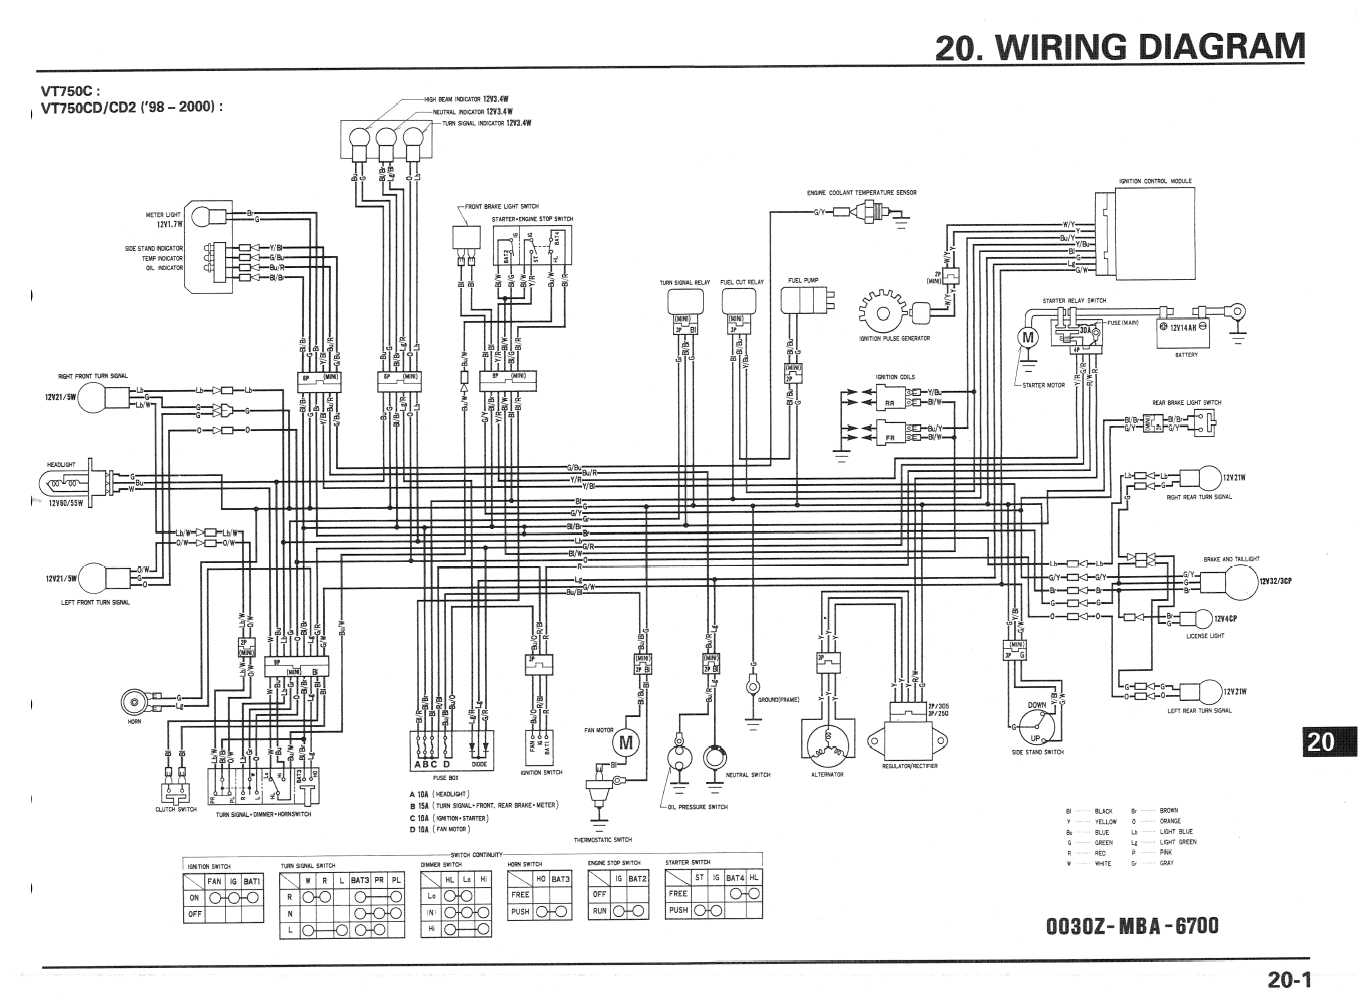 Vt1100c2 Wiring Diagram. Parts. Wiring Diagram Images